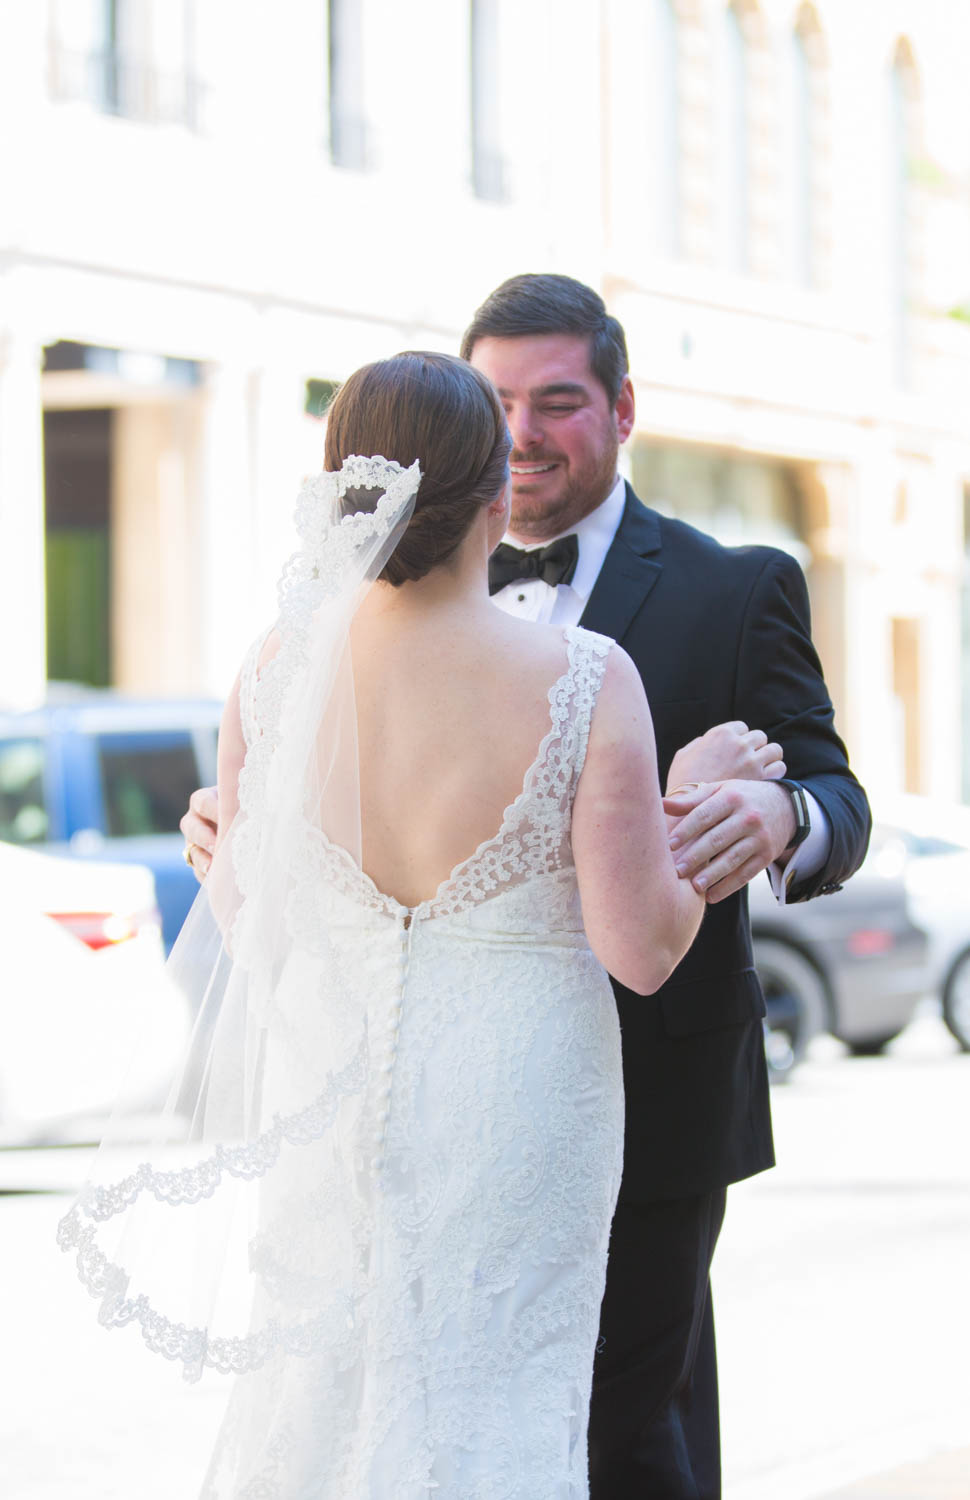 downtowncolumbiawedding-54.jpg